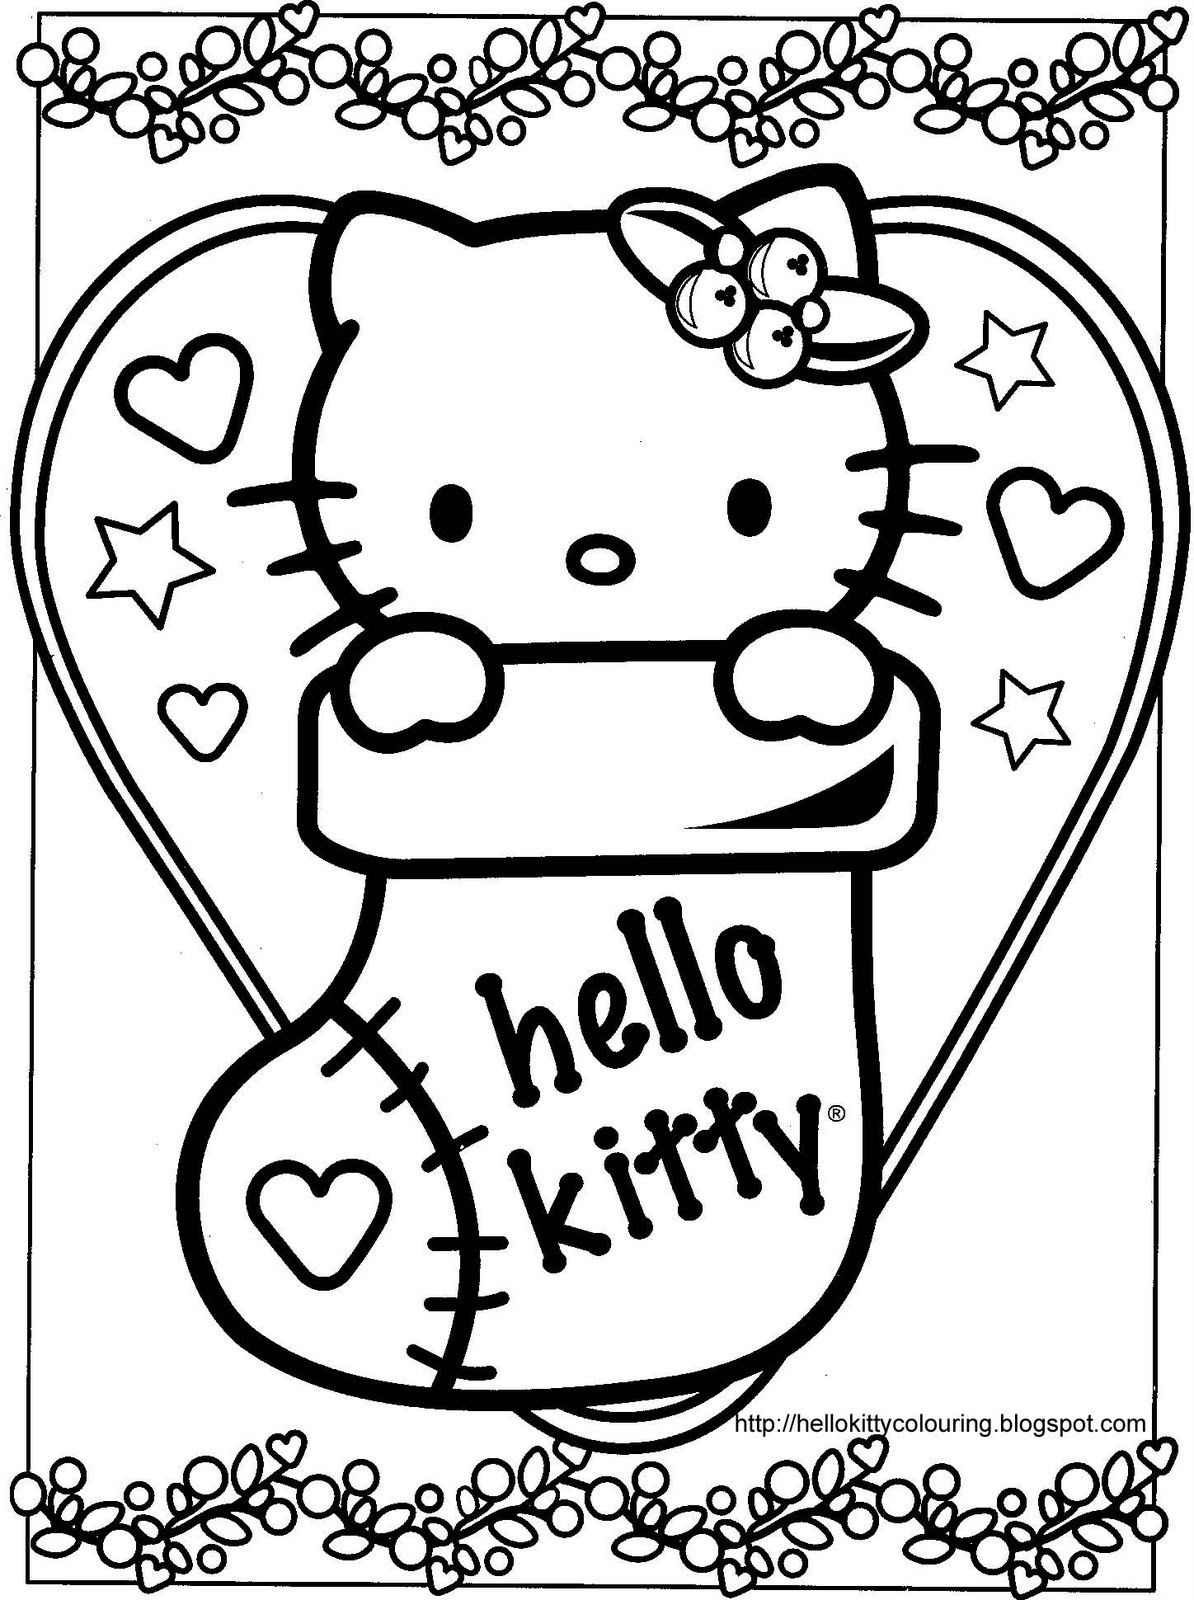 Hello Kitty Christmas Coloring Pages | Hello kitty coloring, Kitty ... | 1600x1194